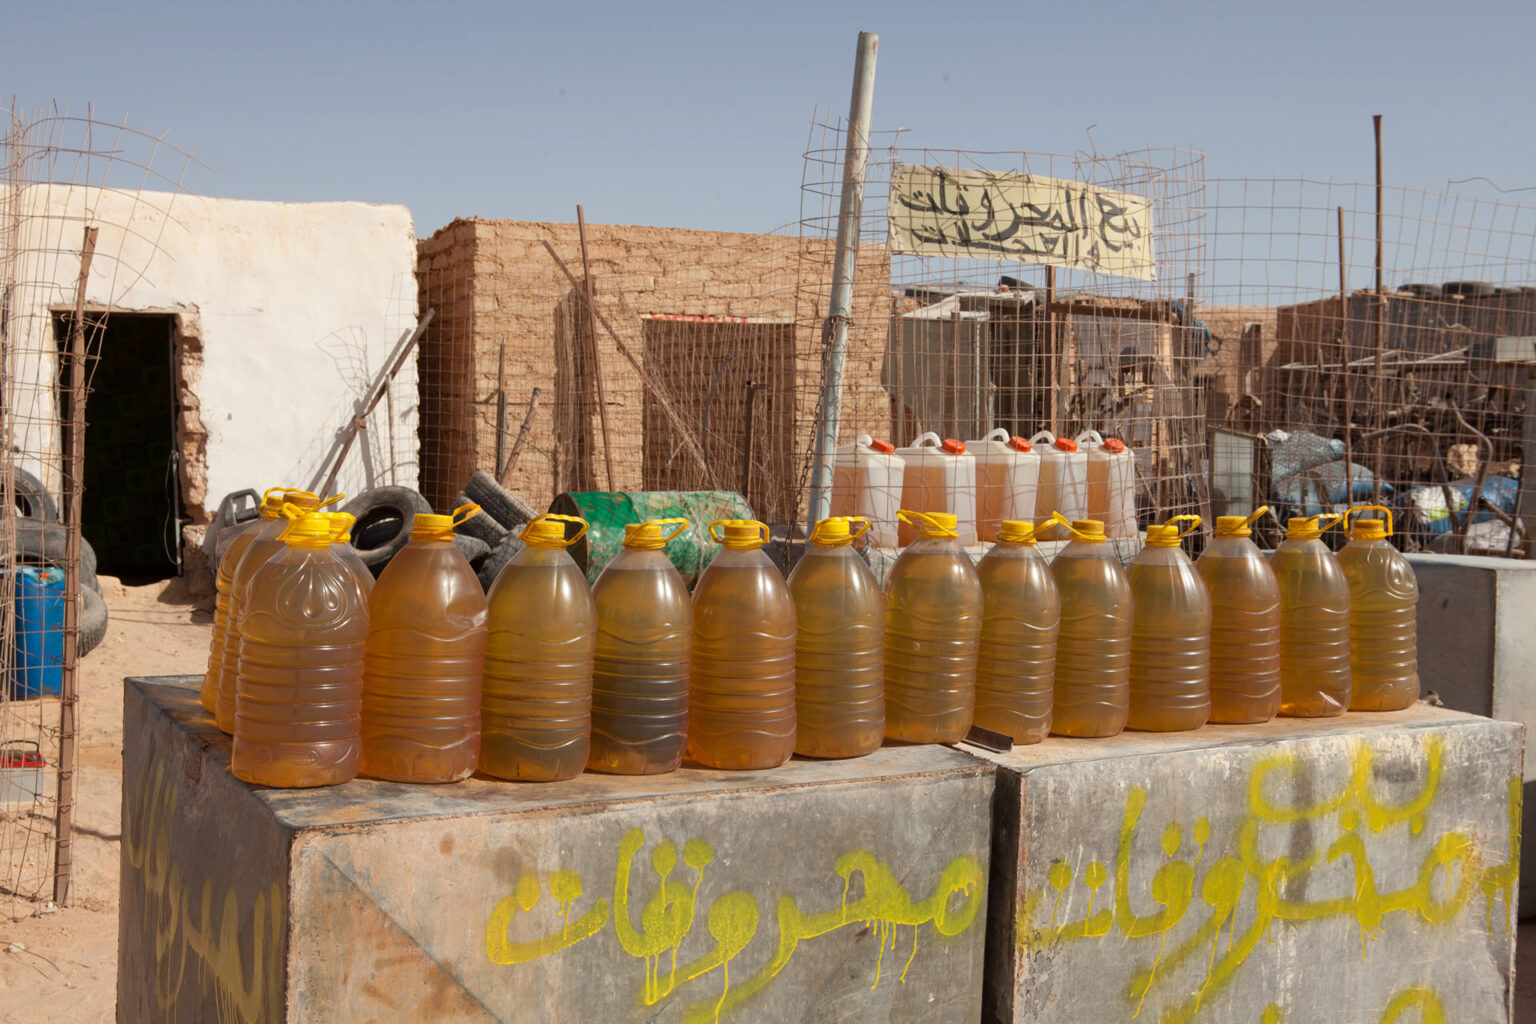 Cooking oil stand, Laayoune Refugee Camp, Algeria, 2015